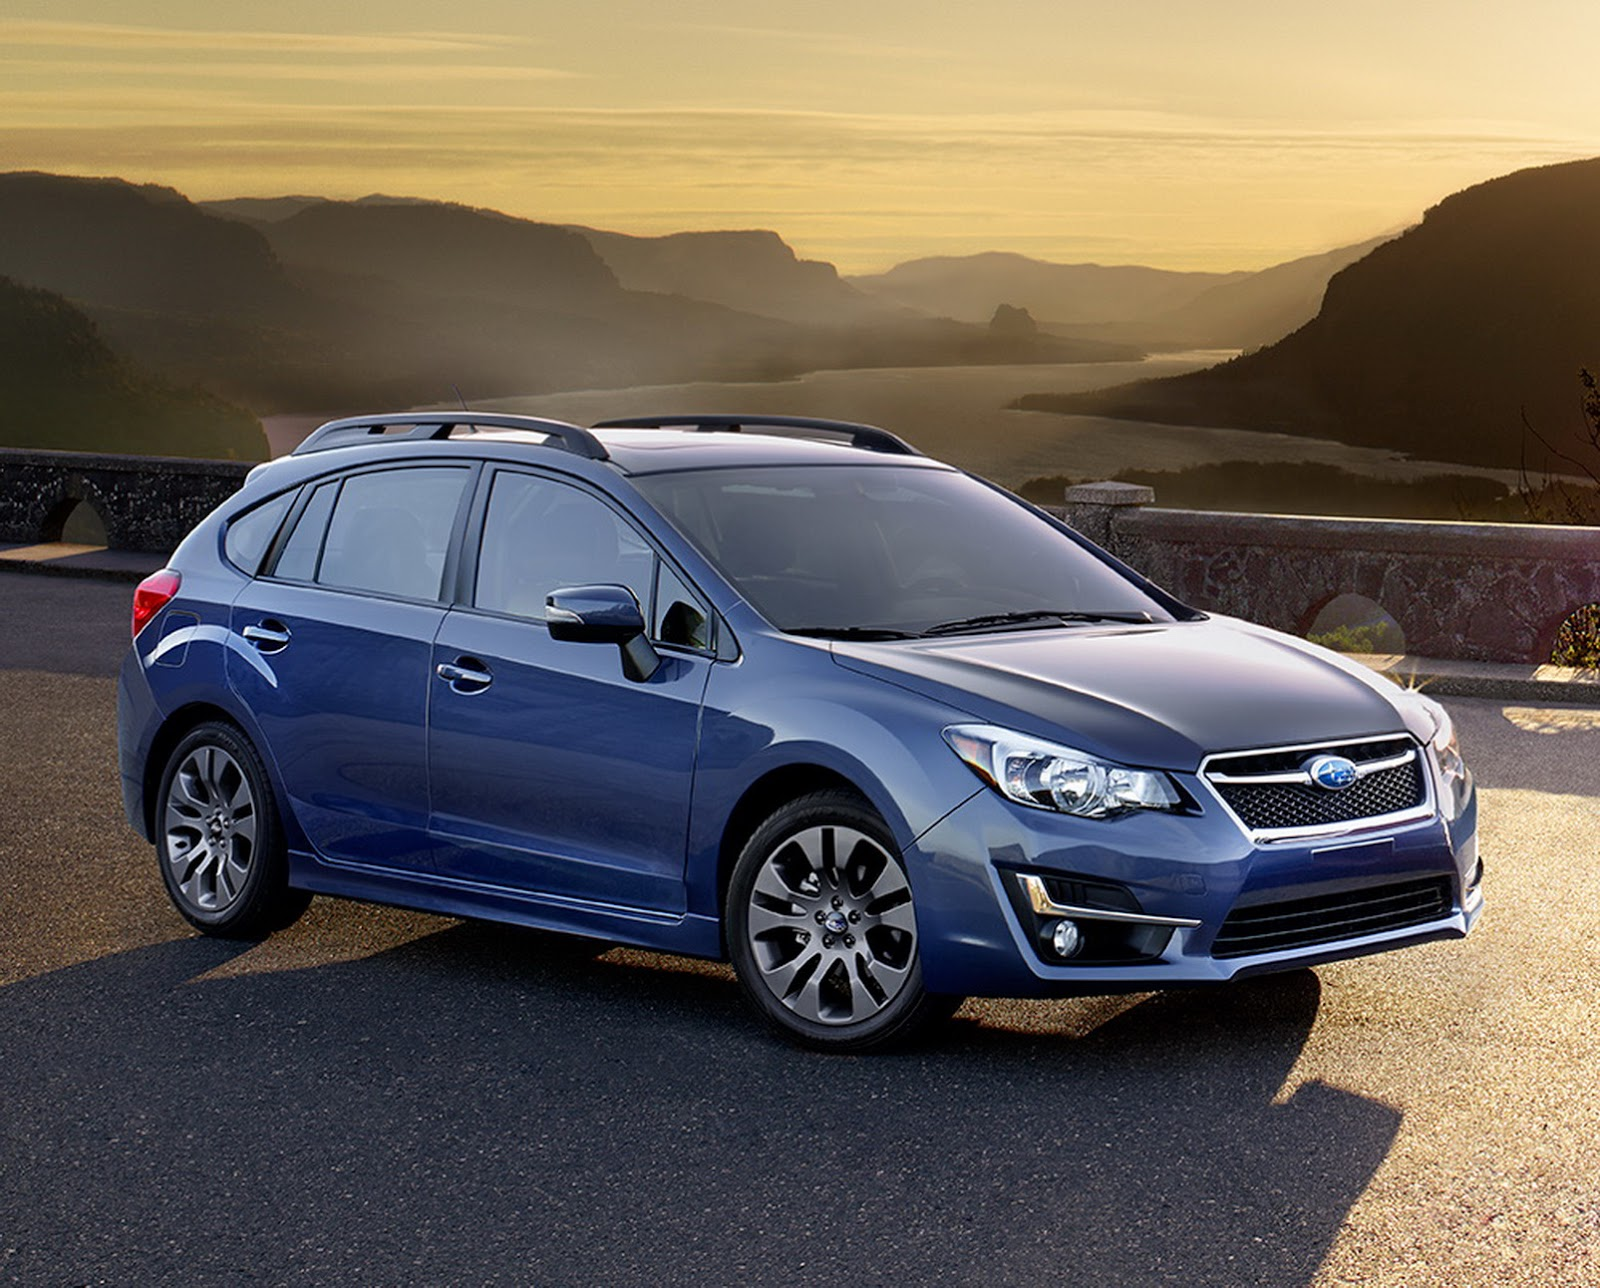 Subaru Gives 2015 Impreza A Modest Facelift